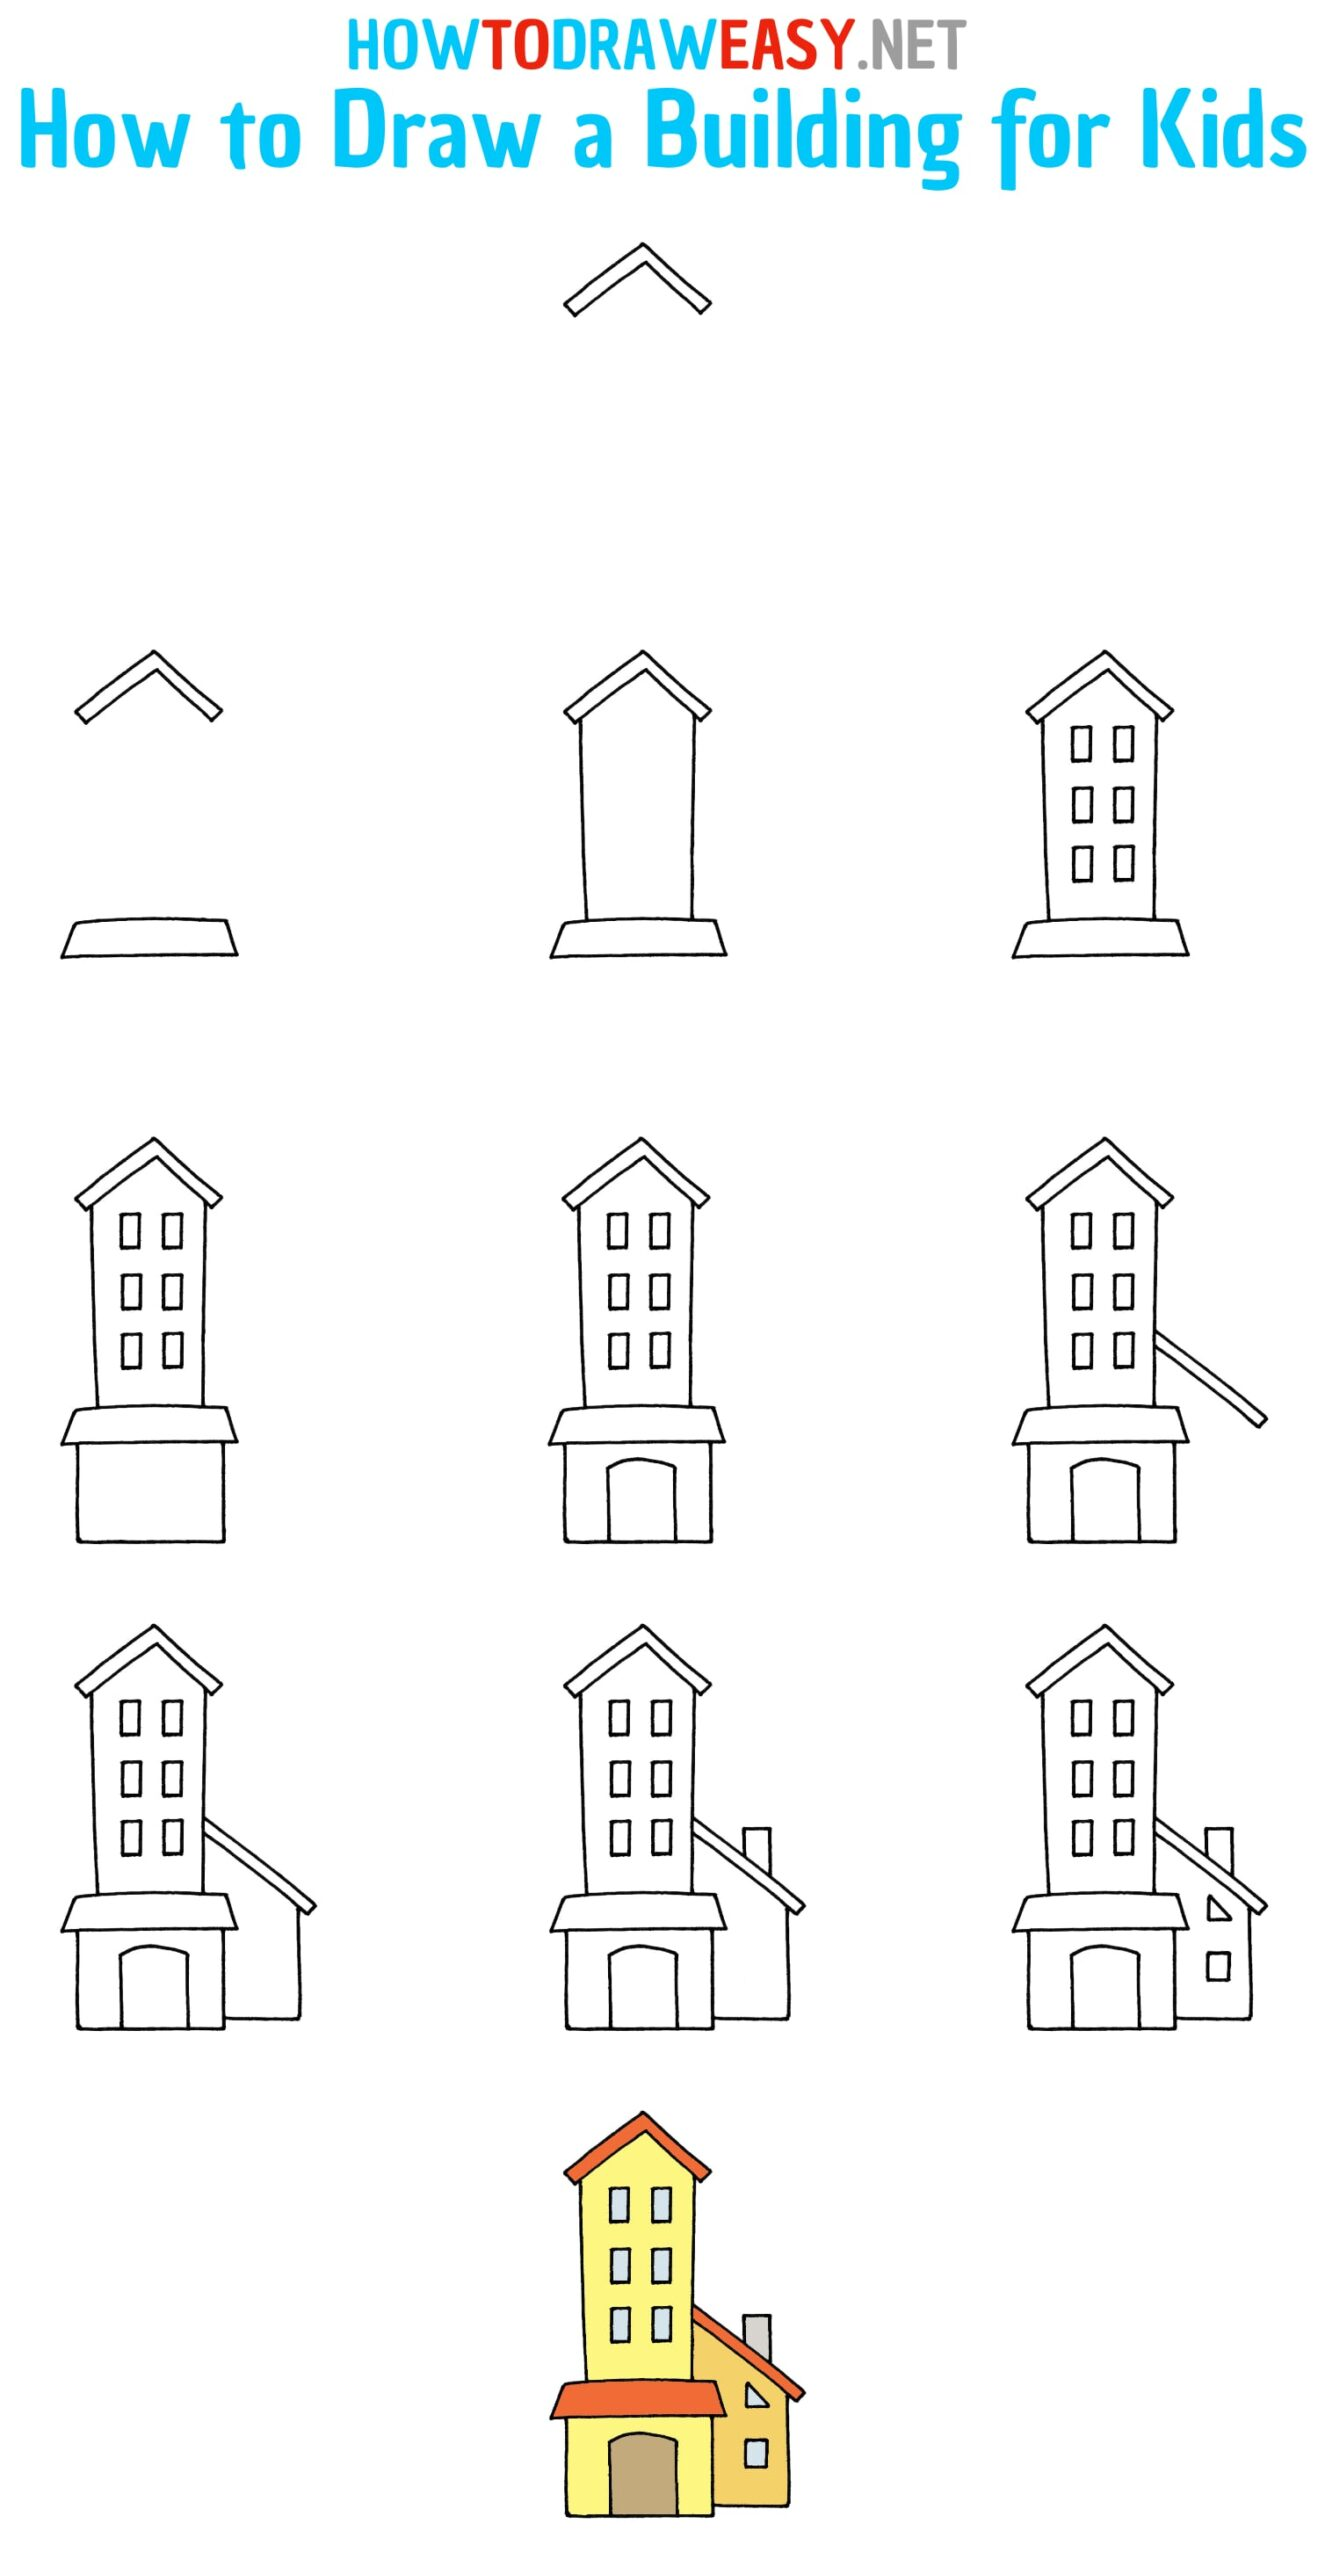 How to Draw a Building Step by Step